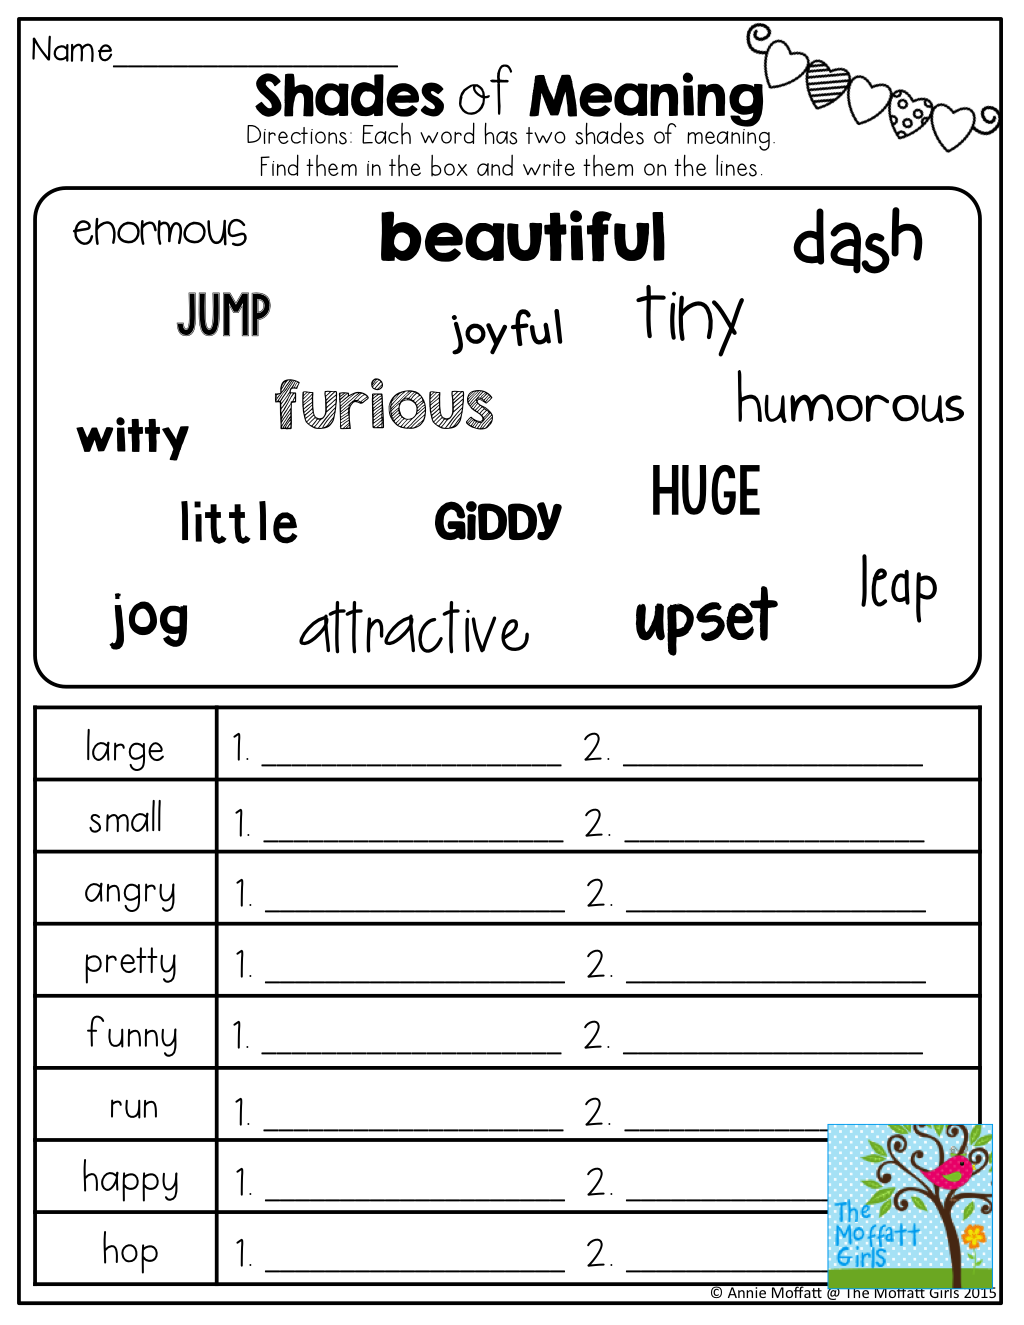 Shades of Meaning! TONS of other great printables! | Shades ...